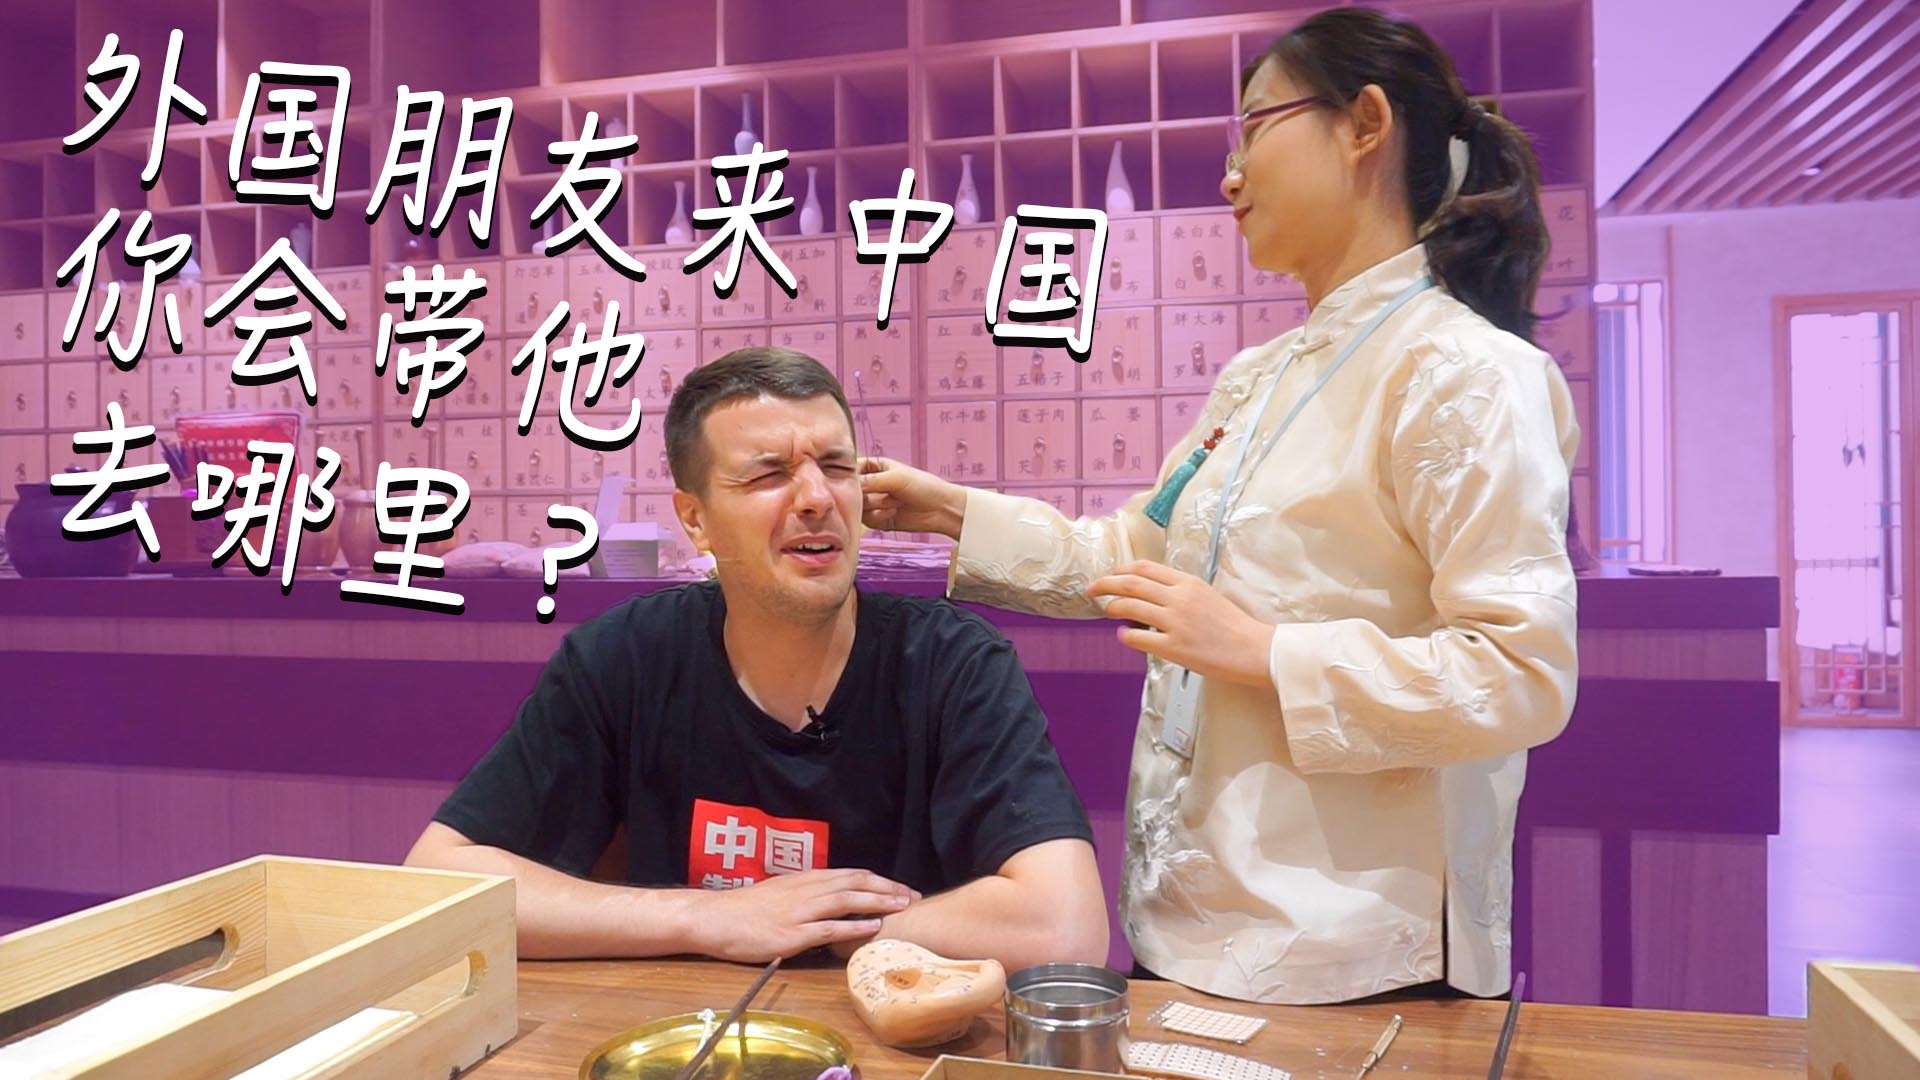 How Should Foreigners Experience China?